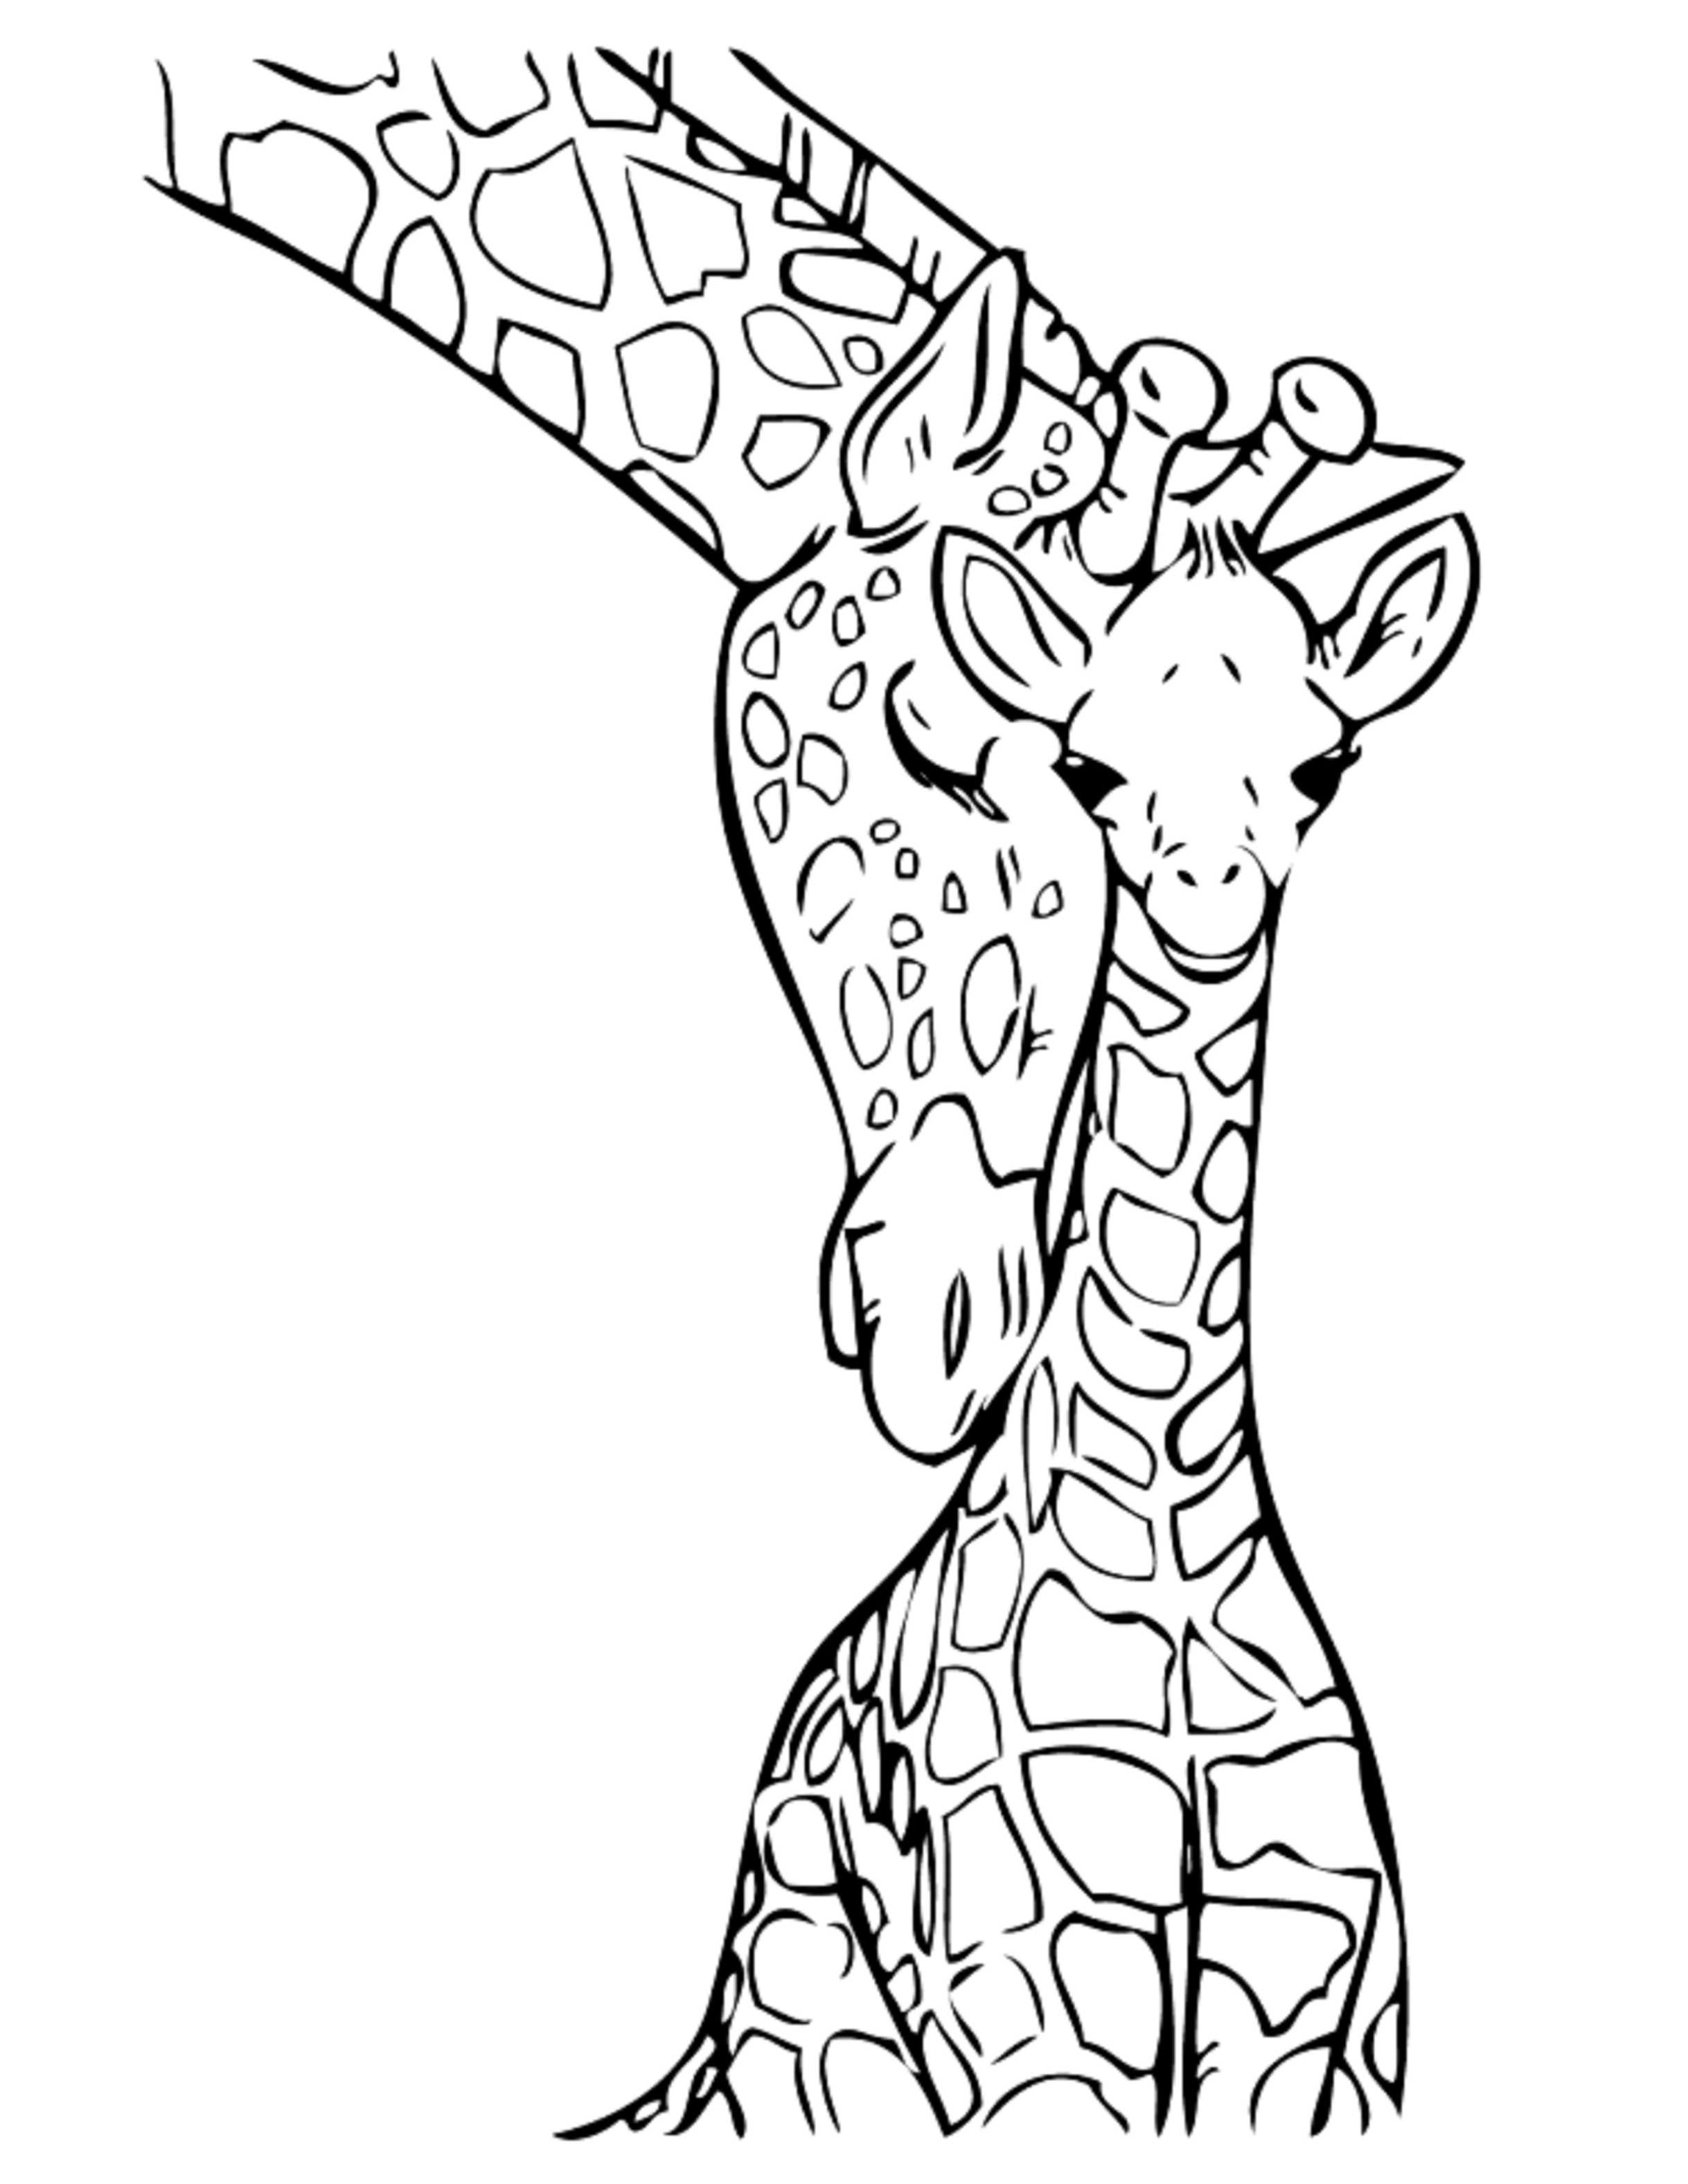 baby giraffe pictures to color giraffe coloring pages bestappsforkidscom color to giraffe pictures baby